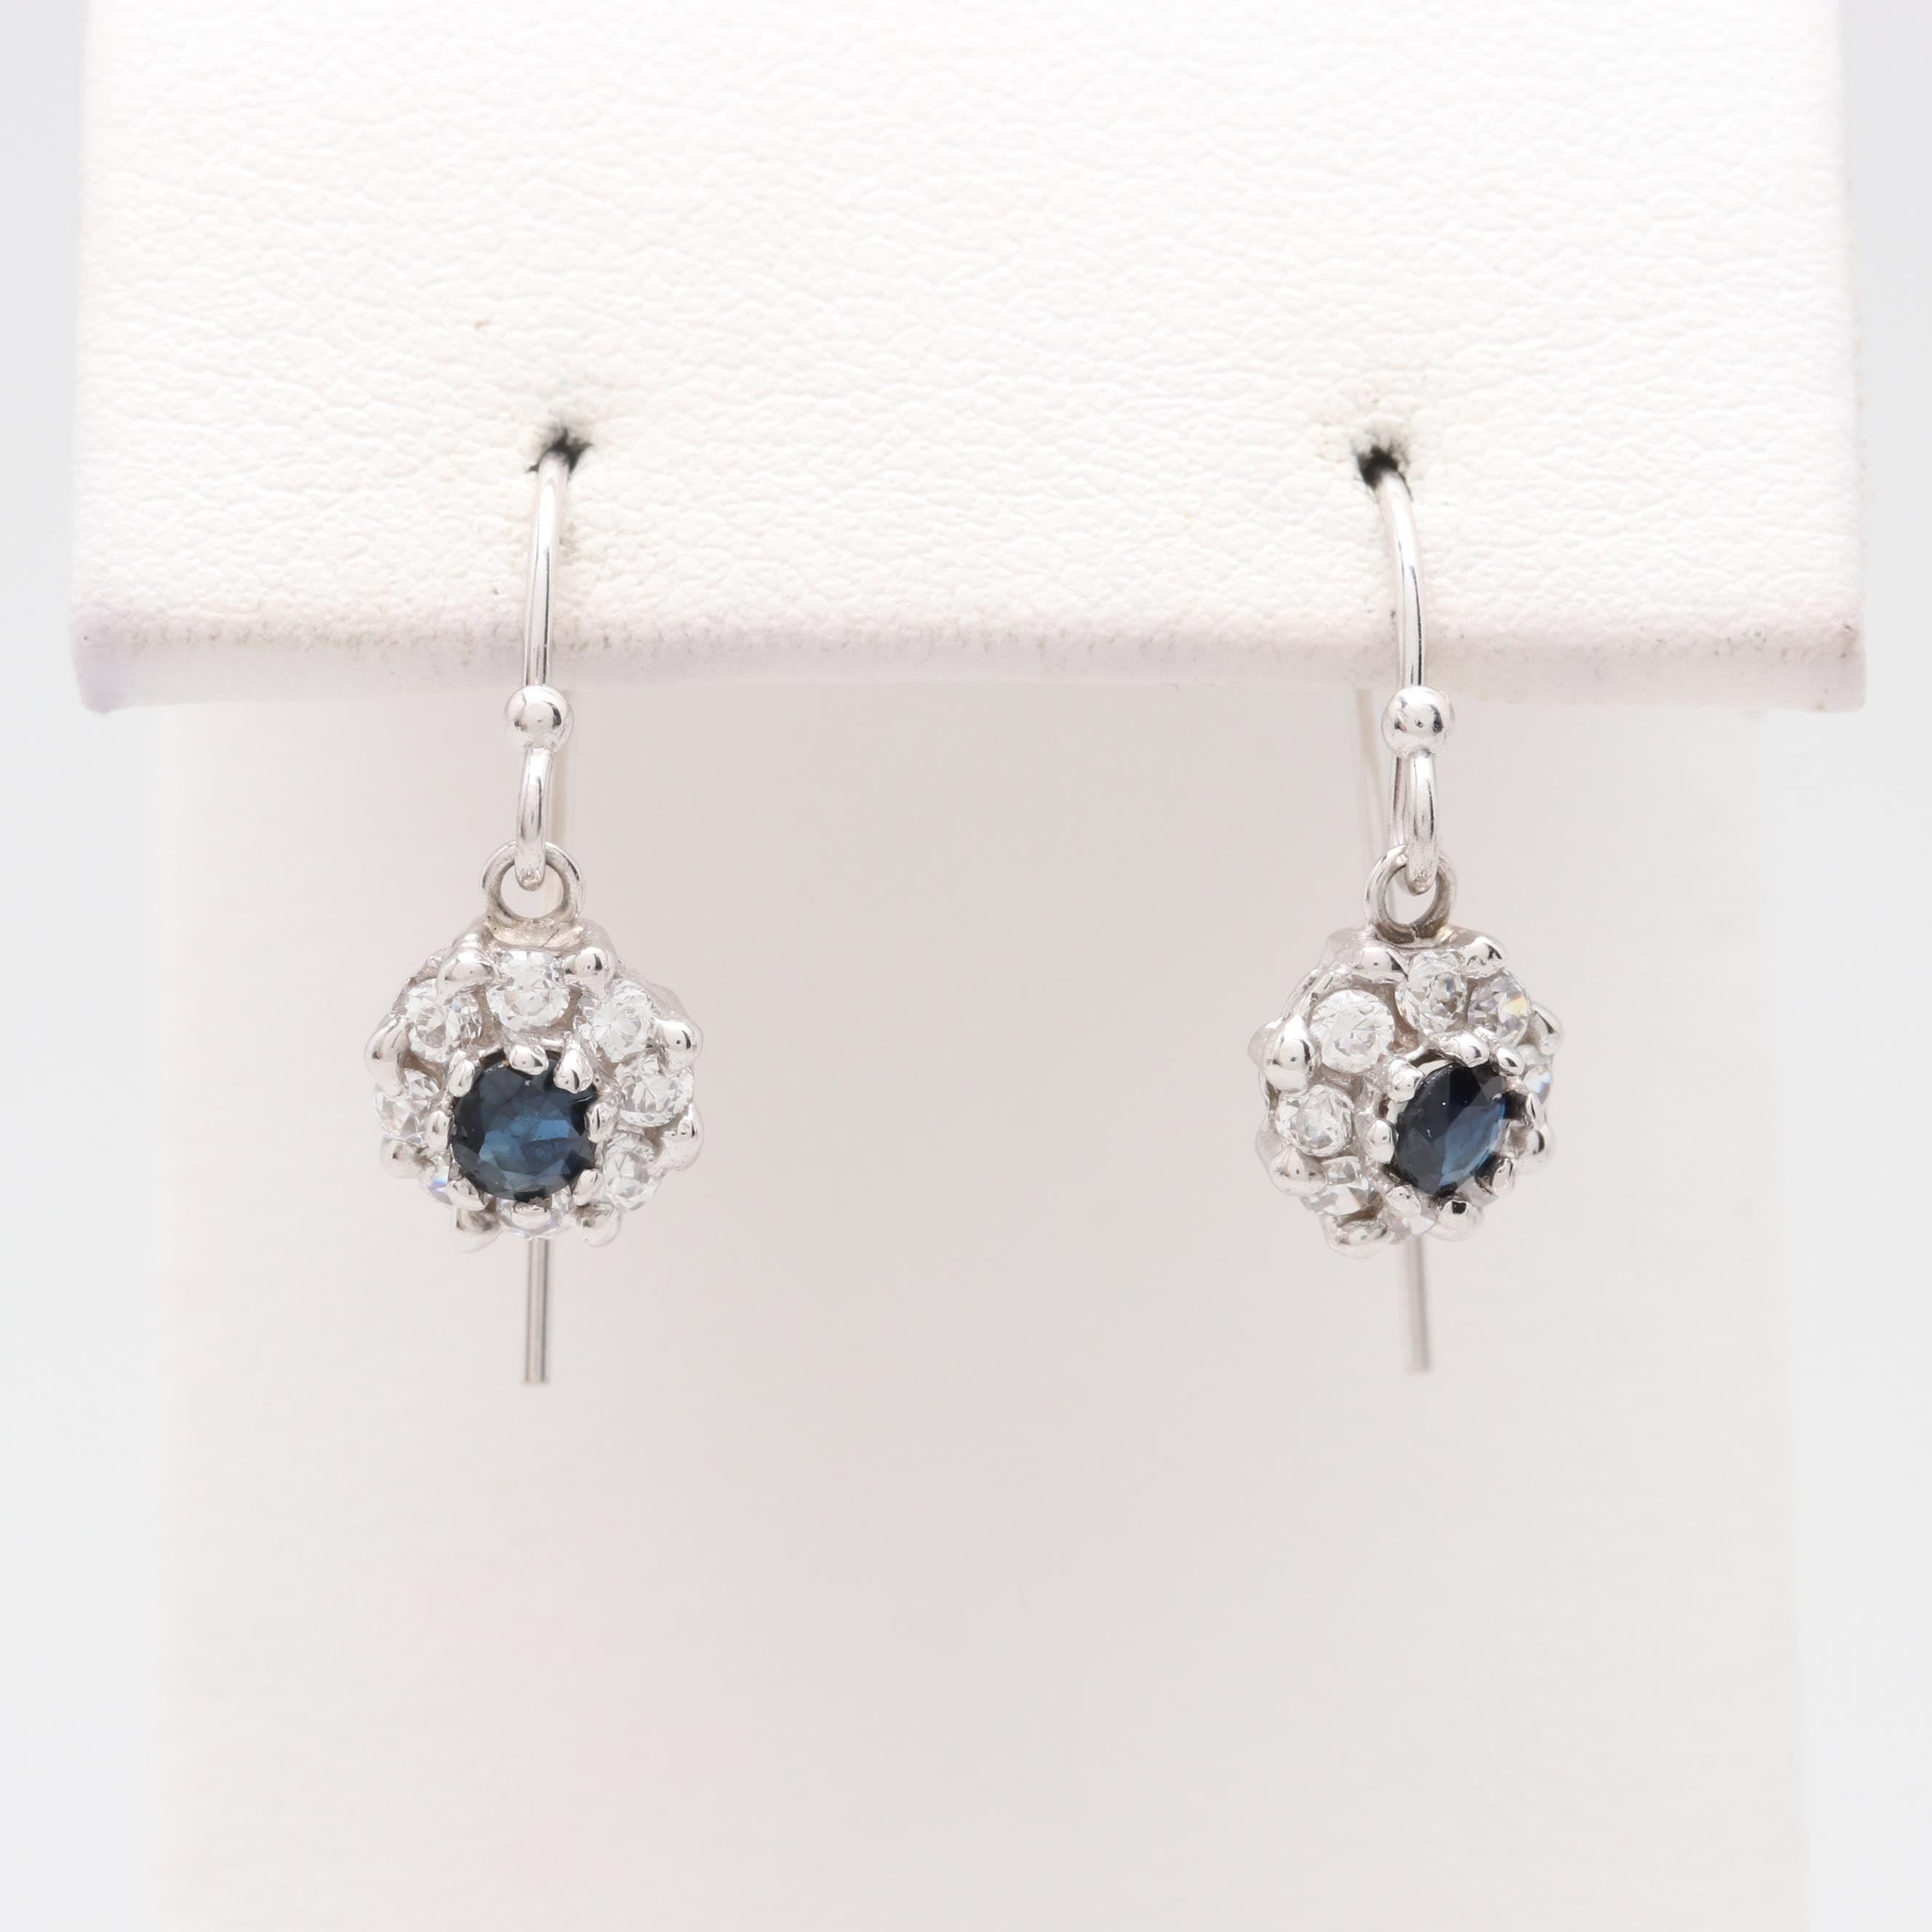 14K White Gold Blue Sapphire and Cubic Zirconia Floral Dangle Earrings